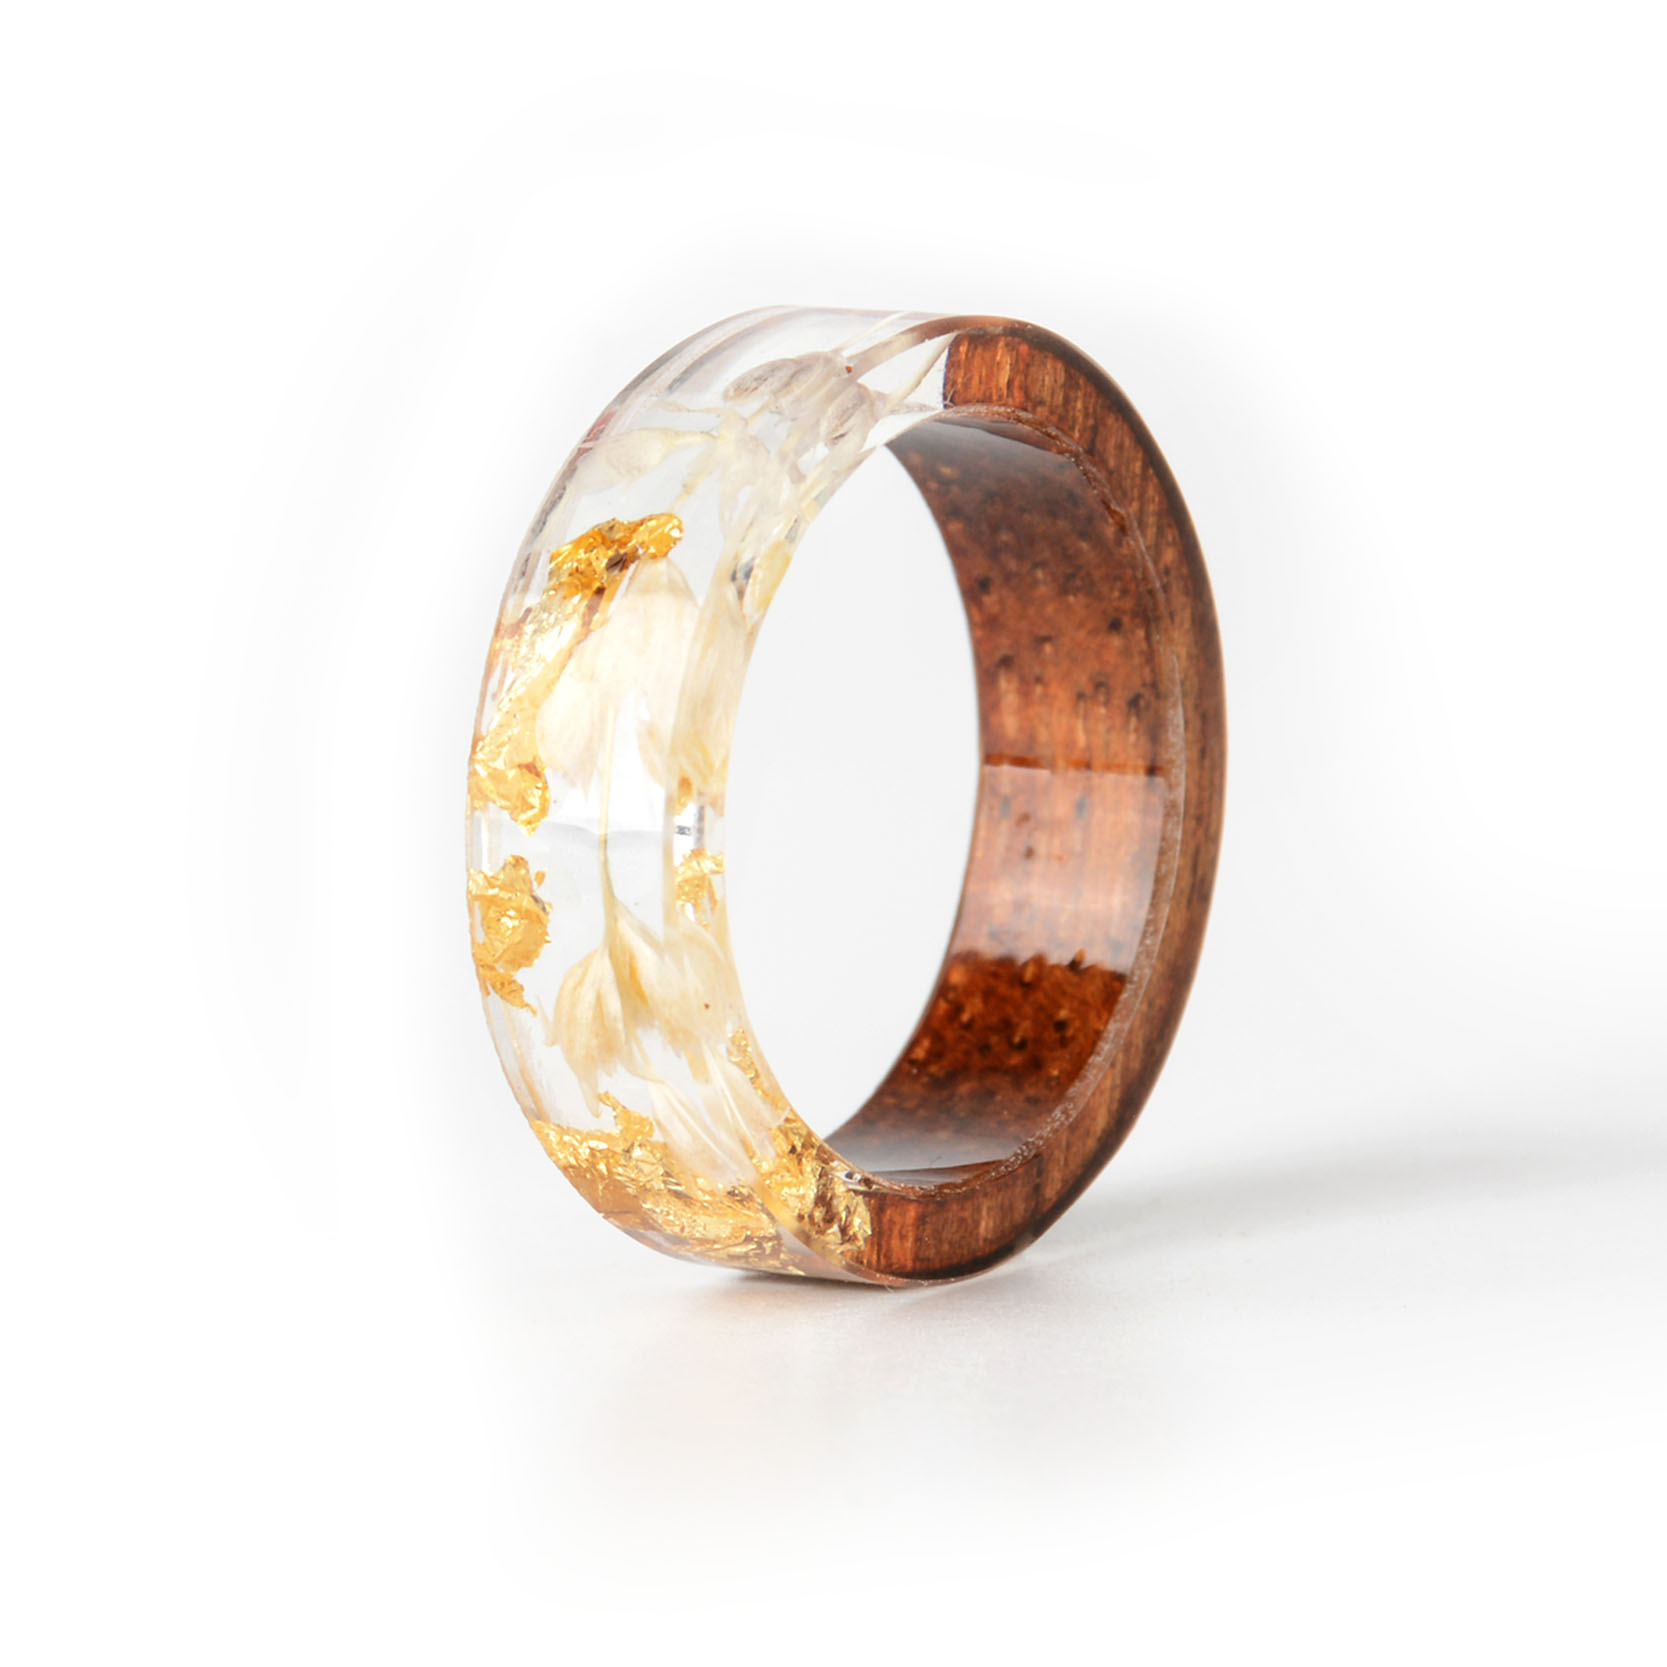 HTB1LJgIKhGYBuNjy0Fnq6x5lpXaX - Hot Sale Handmade Wood Resin Ring Dried Flowers Plants Inside Jewelry Resin Ring Transparent Anniversary Ring for Women